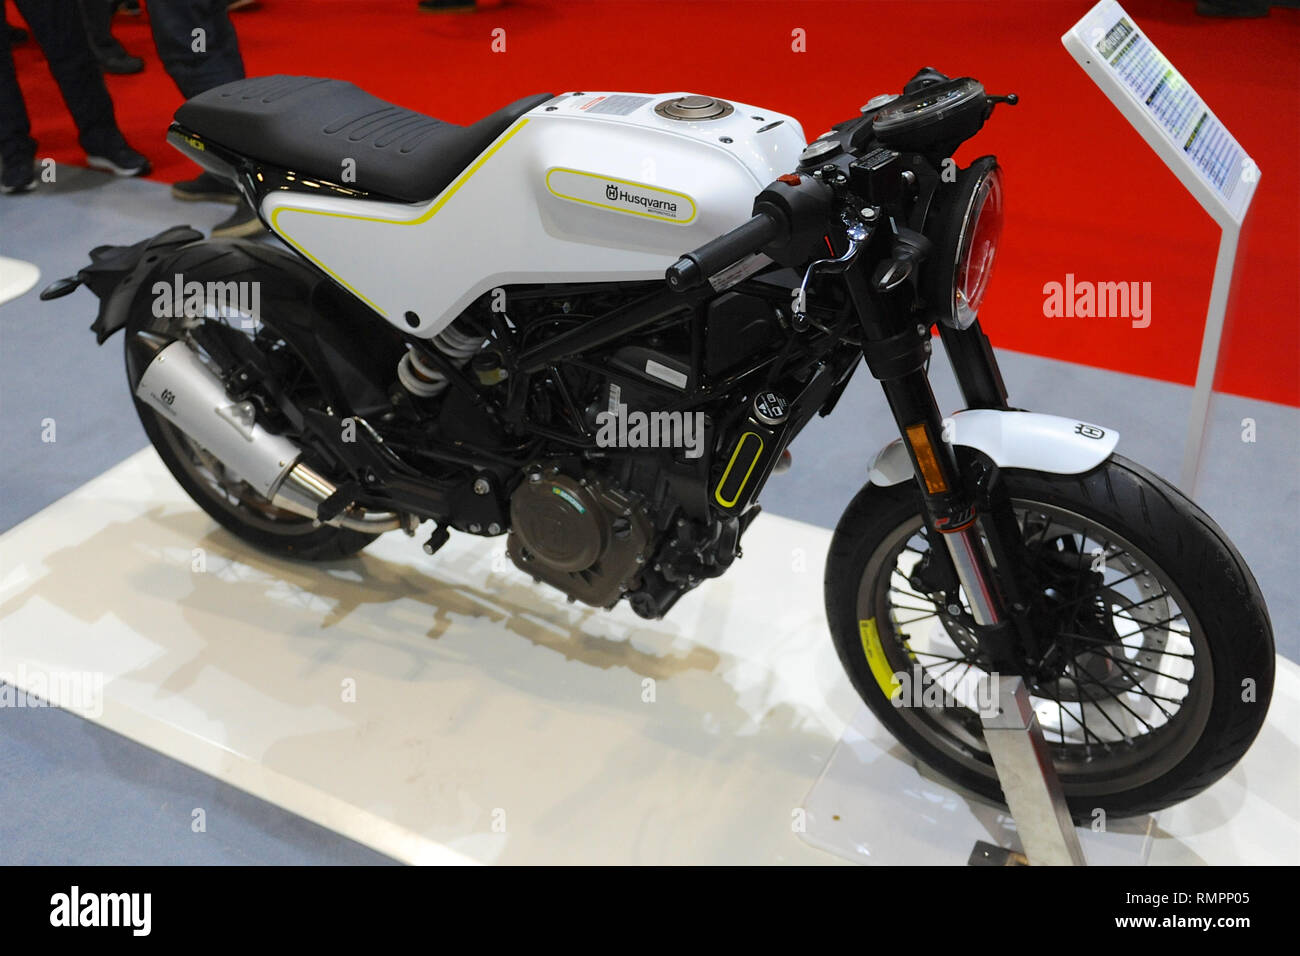 London, UK. 15th Feb, 2019. A Husqvarna 401 Vitpilen motorbike on display at the Carole Nash MCN London Motorcycle Show which is taking place at ExCel London, United Kingdom.  The show features a vast variety of wheeled transport from motorbikes, scooters and superbikes to customised one-off choppers from the world's top motorcycle manufacturers, Around 40,000 fans are expected to visit the show, ranging from two wheel enthusiasts to baby boomer, born again bikers looking for their ultimate motorcycle for a dream roadtrip. Credit: Michael Preston/Alamy Live News - Stock Image